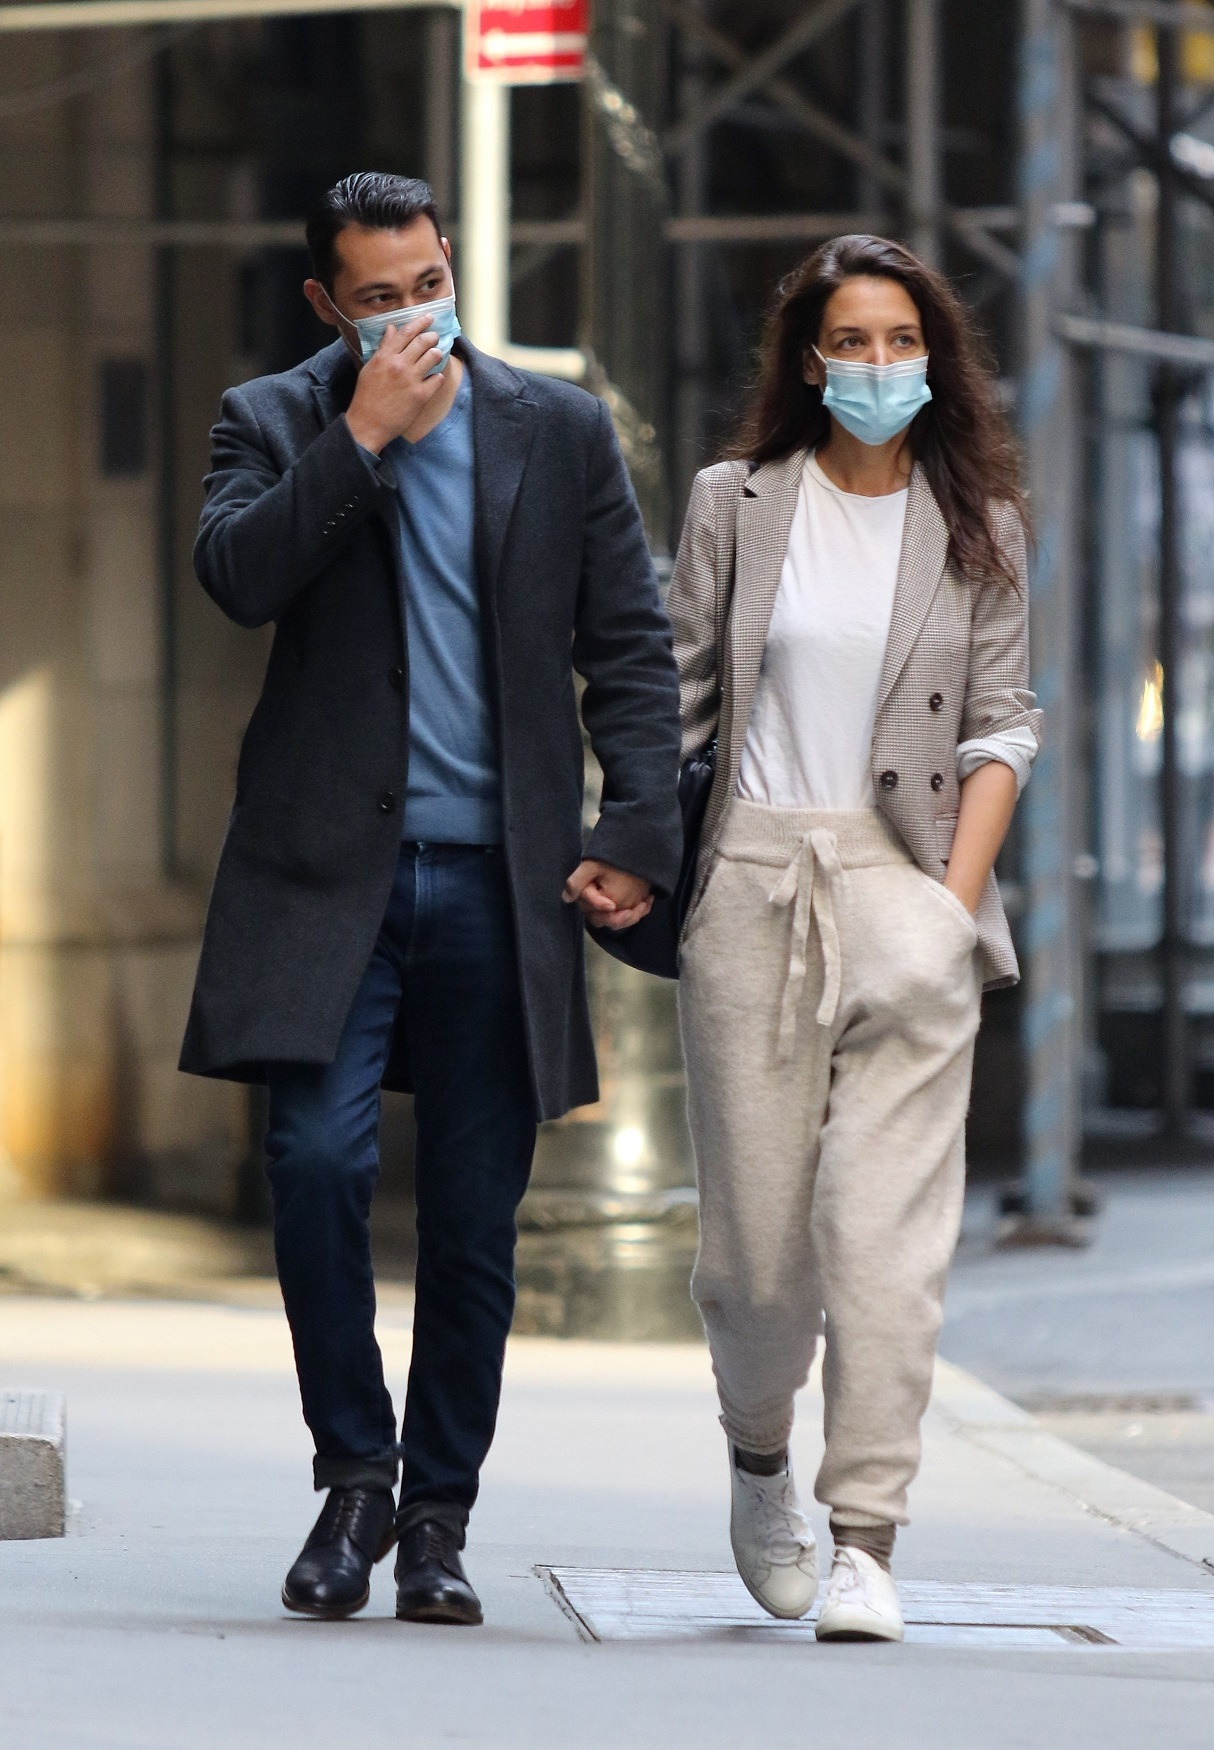 New York, NY  - Katie Holmes and boyfriend Emilio Vitolo Jr. are seen walking hand-in-hand after taking a ride in his red Pontiac from Katie's Soho apartment all the way to Downtown's Wall Street area. Emilio arrived at Katie's apt to pick her up, but first Katie invited her Chef boyfriend to her apt where the couple spent half hour inside before going for a joyride in his red Pontiac. The Chef was a gentleman as Katie patiently waited for him to open the car door for her. The new couple were all smiles as they spent the day touring New York City.  BACKGRID USA 21 SEPTEMBER 2020,Image: 559111958, License: Rights-managed, Restrictions: , Model Release: no, Credit line: BrosNYC / BACKGRID / Backgrid USA / Profimedia